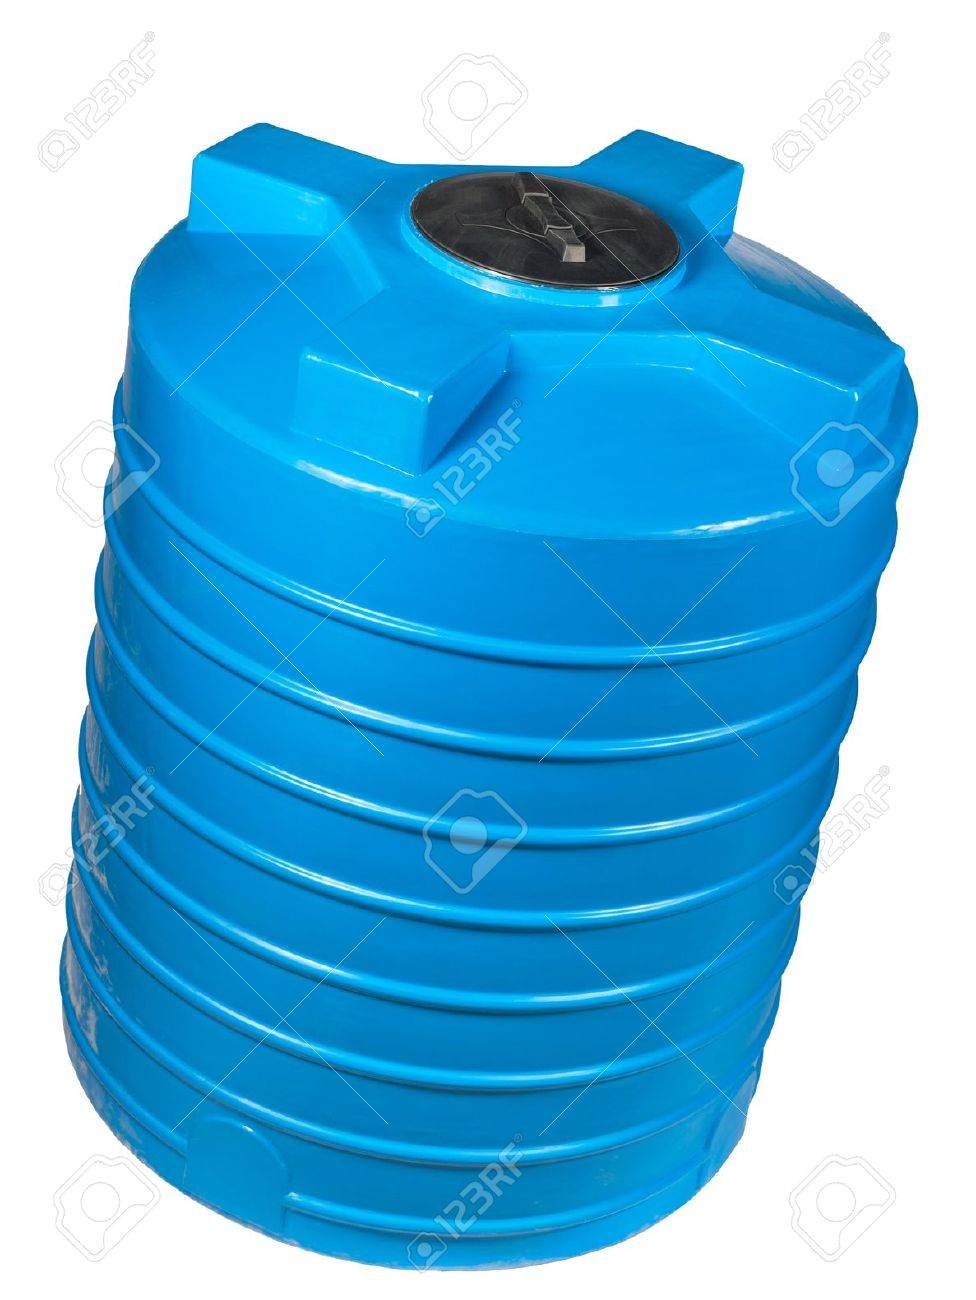 Big polyethylene container of 2000 litres. Used for accumulation, storage and transportation of not only technical or drinking water, but also a variety of dry and liquid food products, as well as oils and chemicals. - 14793438